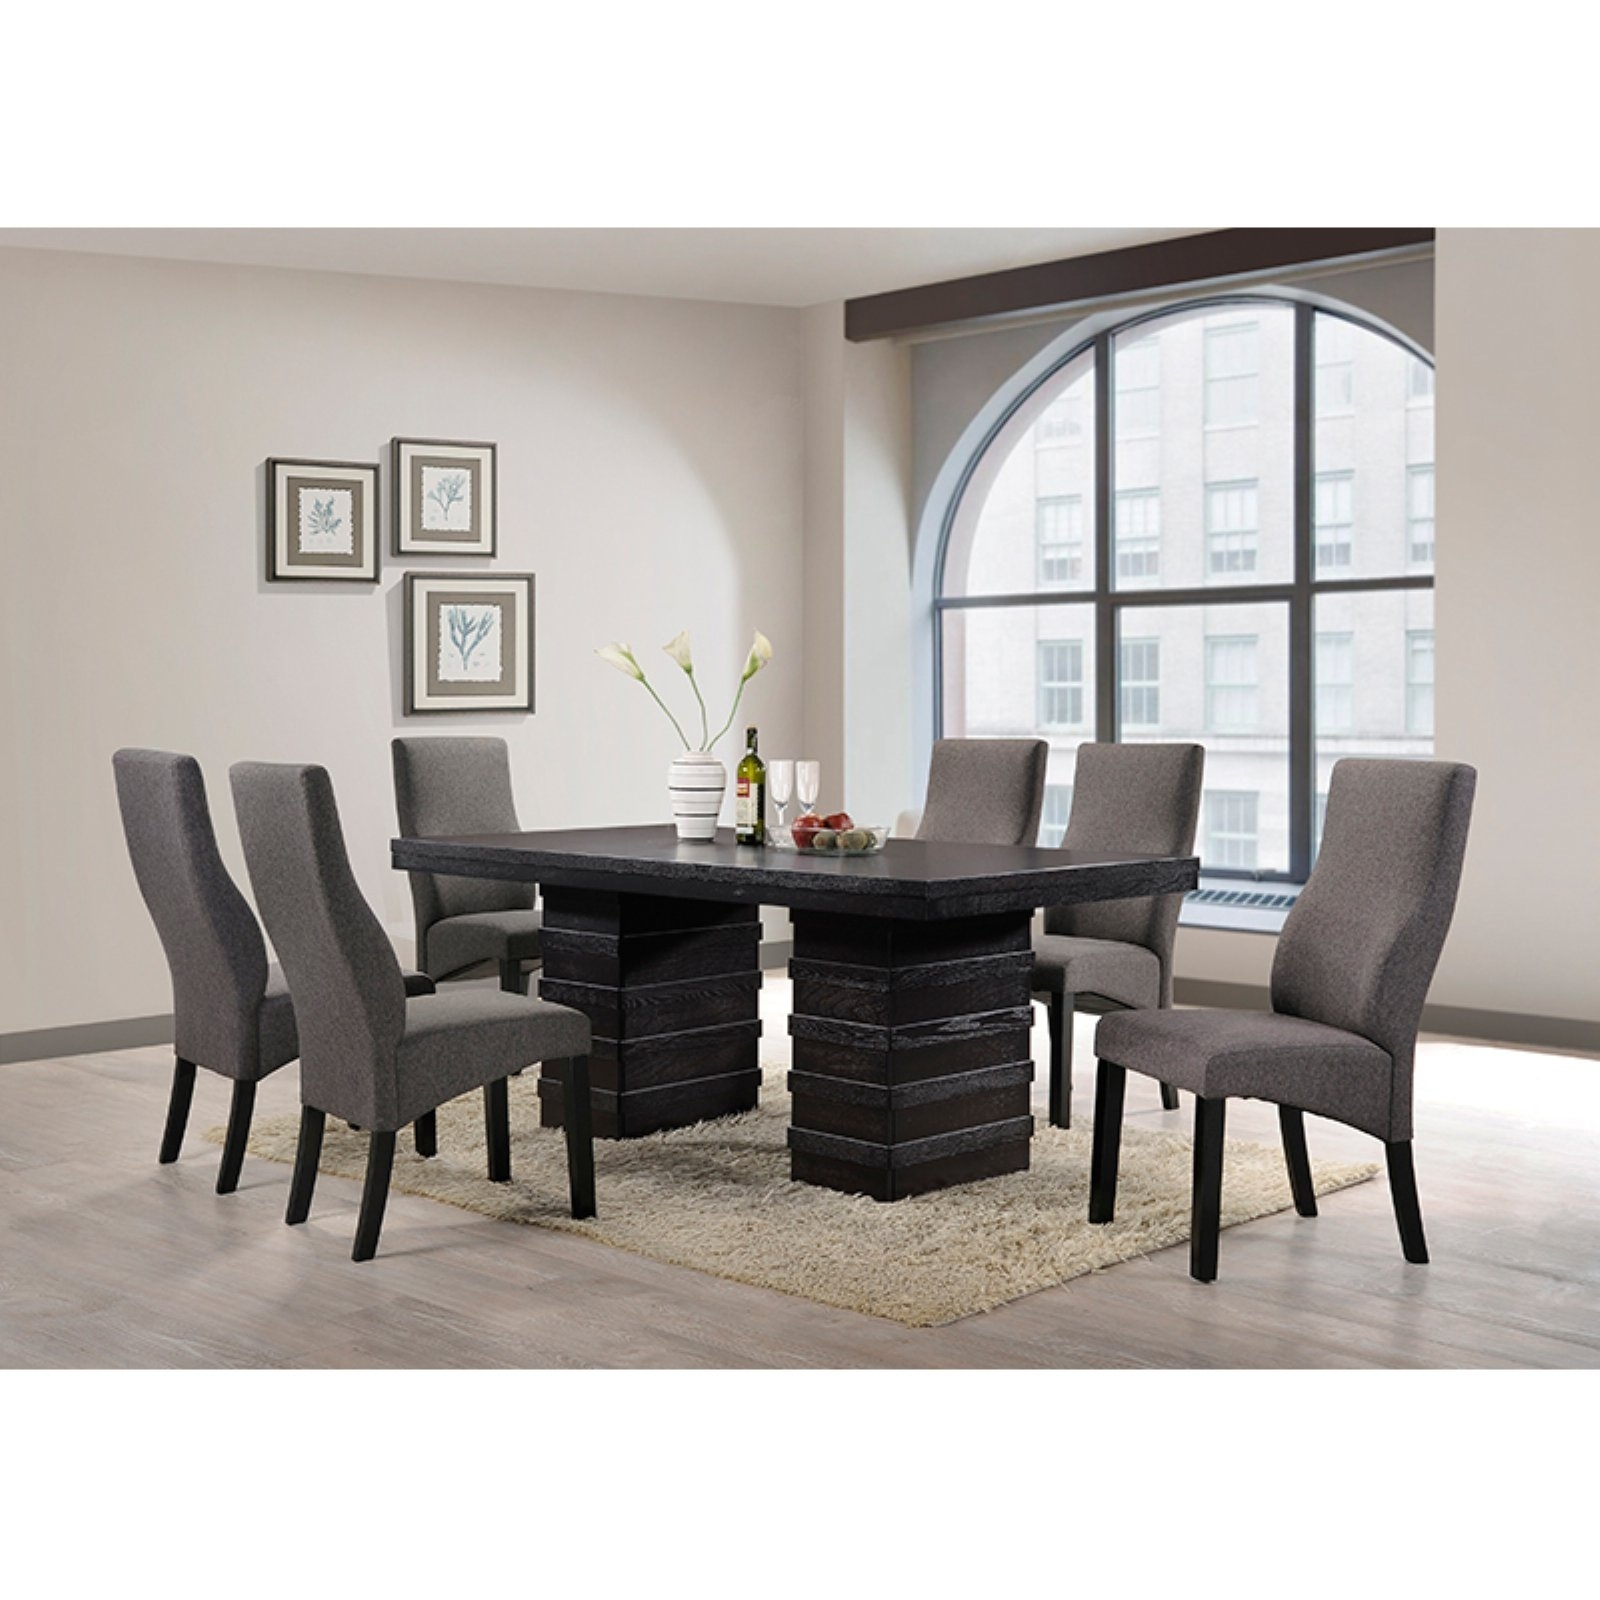 K & B Furniture Norwood Dining Table – Walmart Within Newest Norwood 6 Piece Rectangle Extension Dining Sets (View 4 of 20)